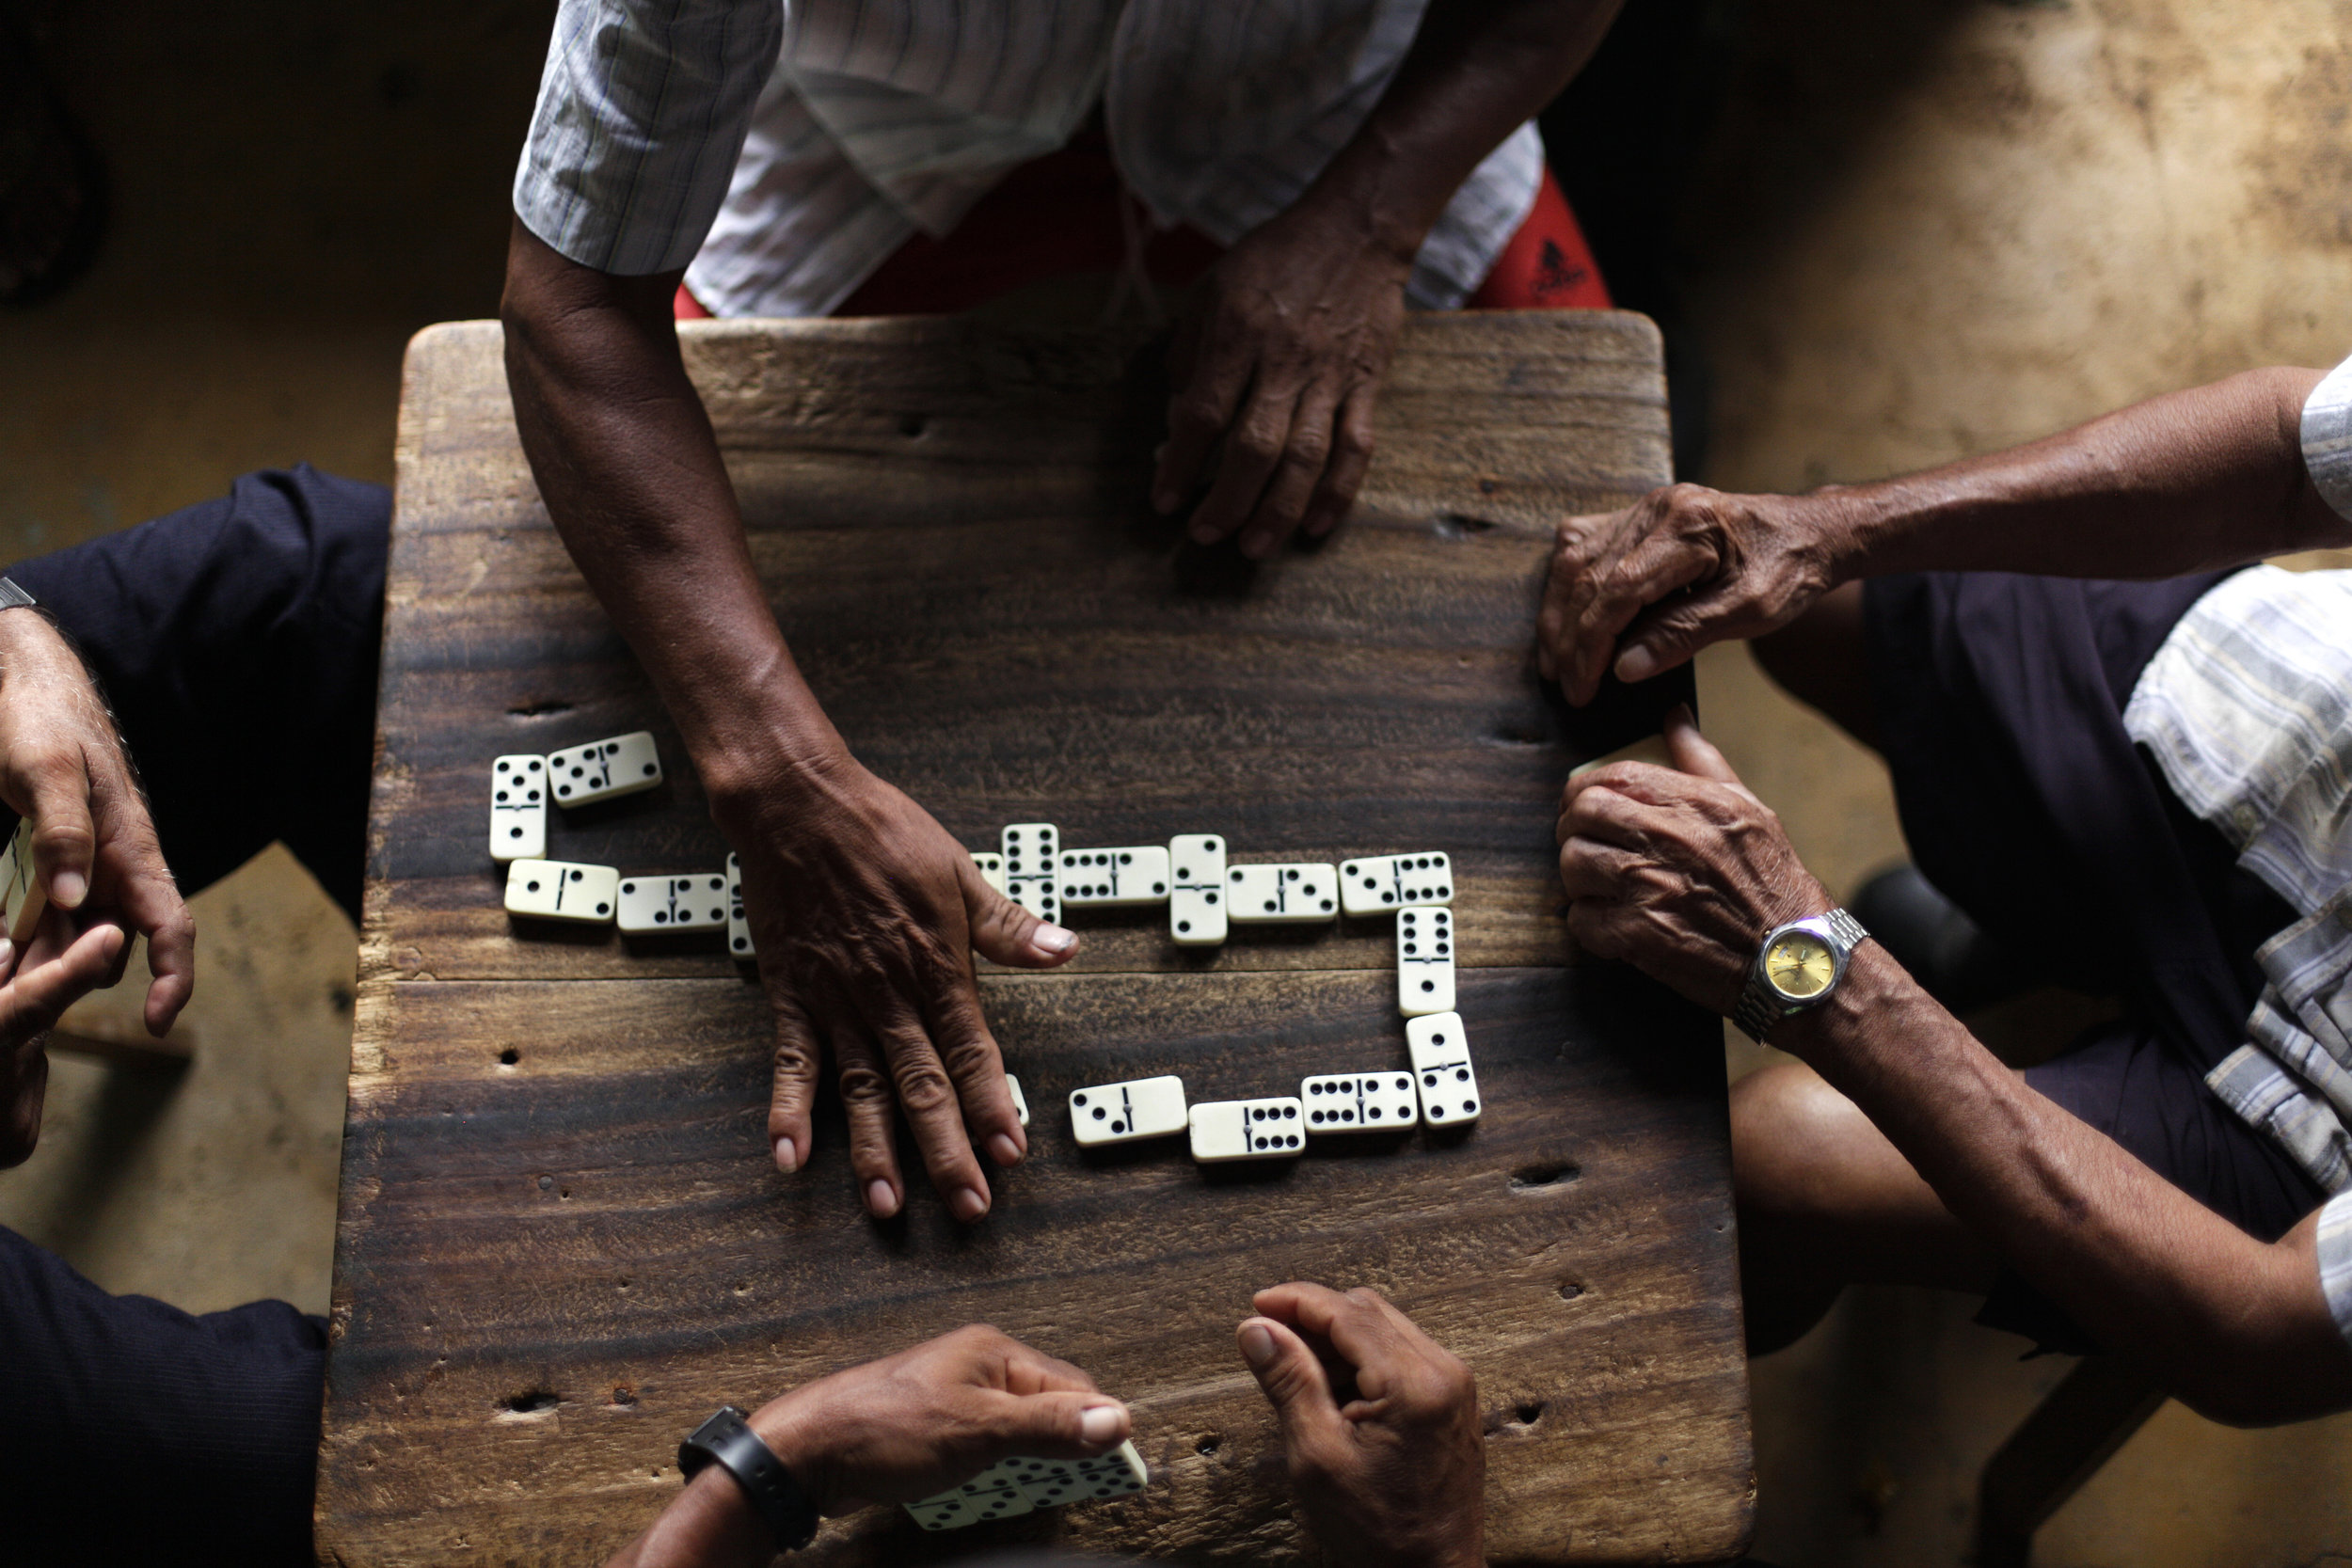 Elders of Matambú play dominos on May. 14, 2011 next to the only convenience store in the town. Matambú, one of the 22 Indian Reservations of Costa Rica, was created on June 26th, 1976. It is the home to the Chorotegas, who are the indigenous group of the Guanacaste region.